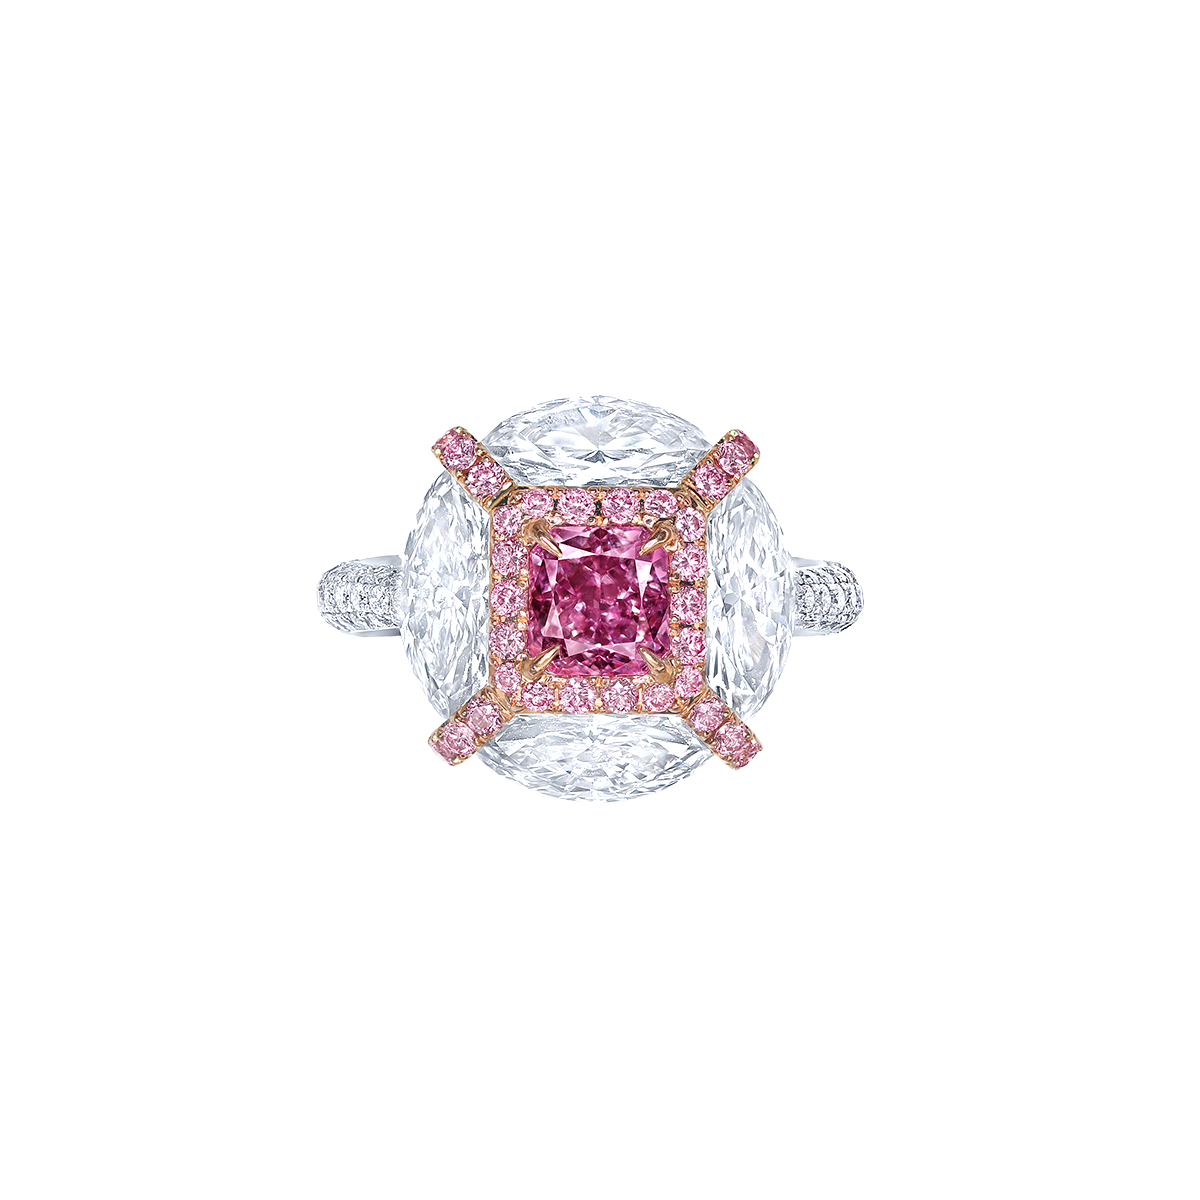 GIA 1.02克拉 濃彩粉紫鑽鑽戒